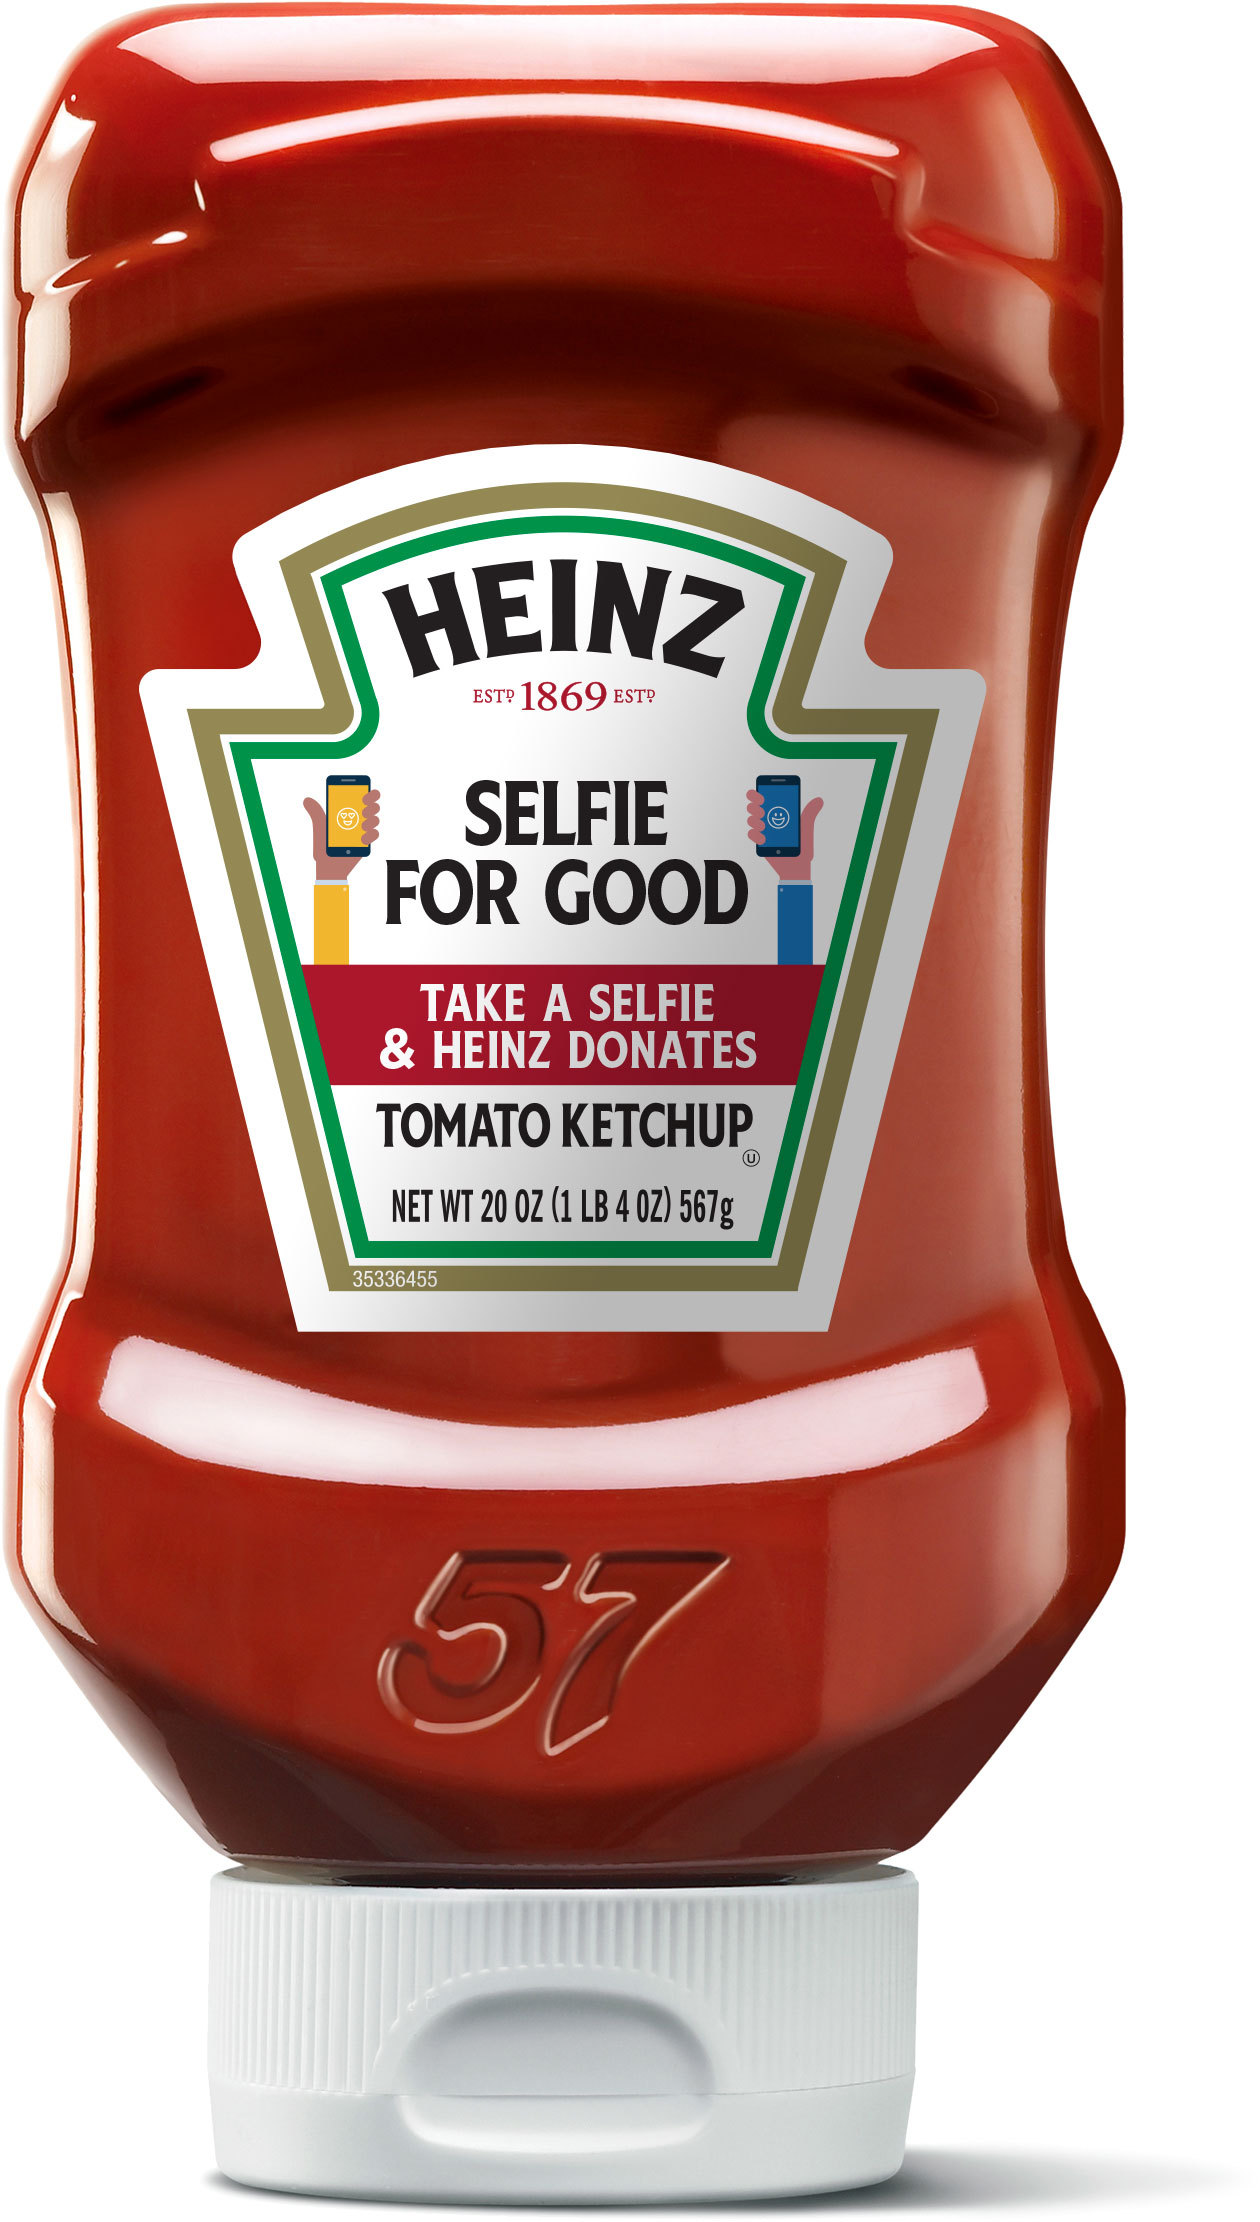 "heinz ketchup Israel banned heinz ketchup the food industry only allows it to be sold as ""tomato seasoning"", not ""tomato ketchup"" triggered by a series of tests conducted by an israeli food company also selling ketchup."